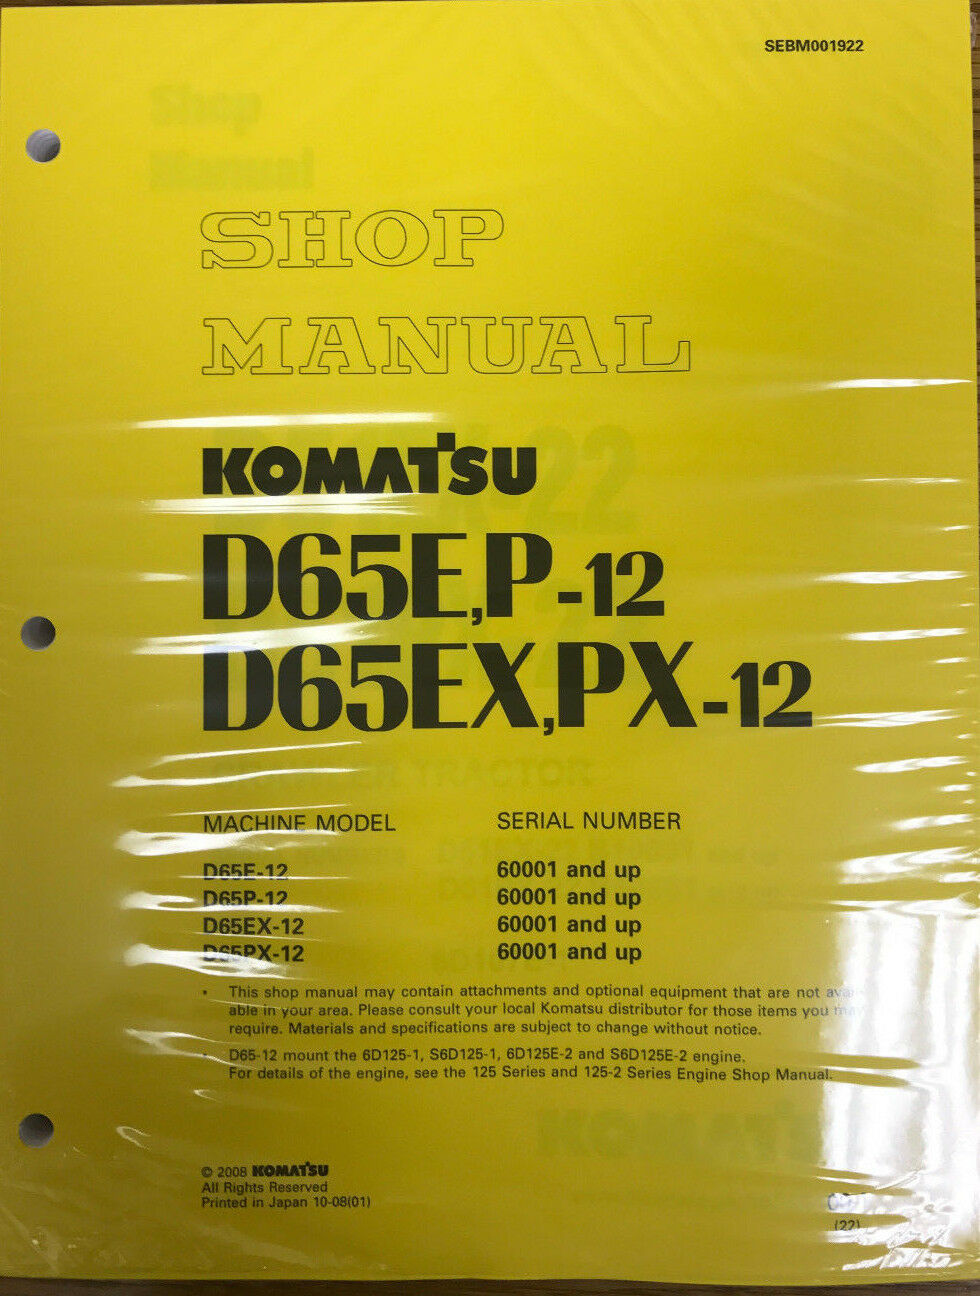 Komatsu D65E-12, D65P-12, D65EX-12, D65PX-12 1 of 1Only 1 available See More